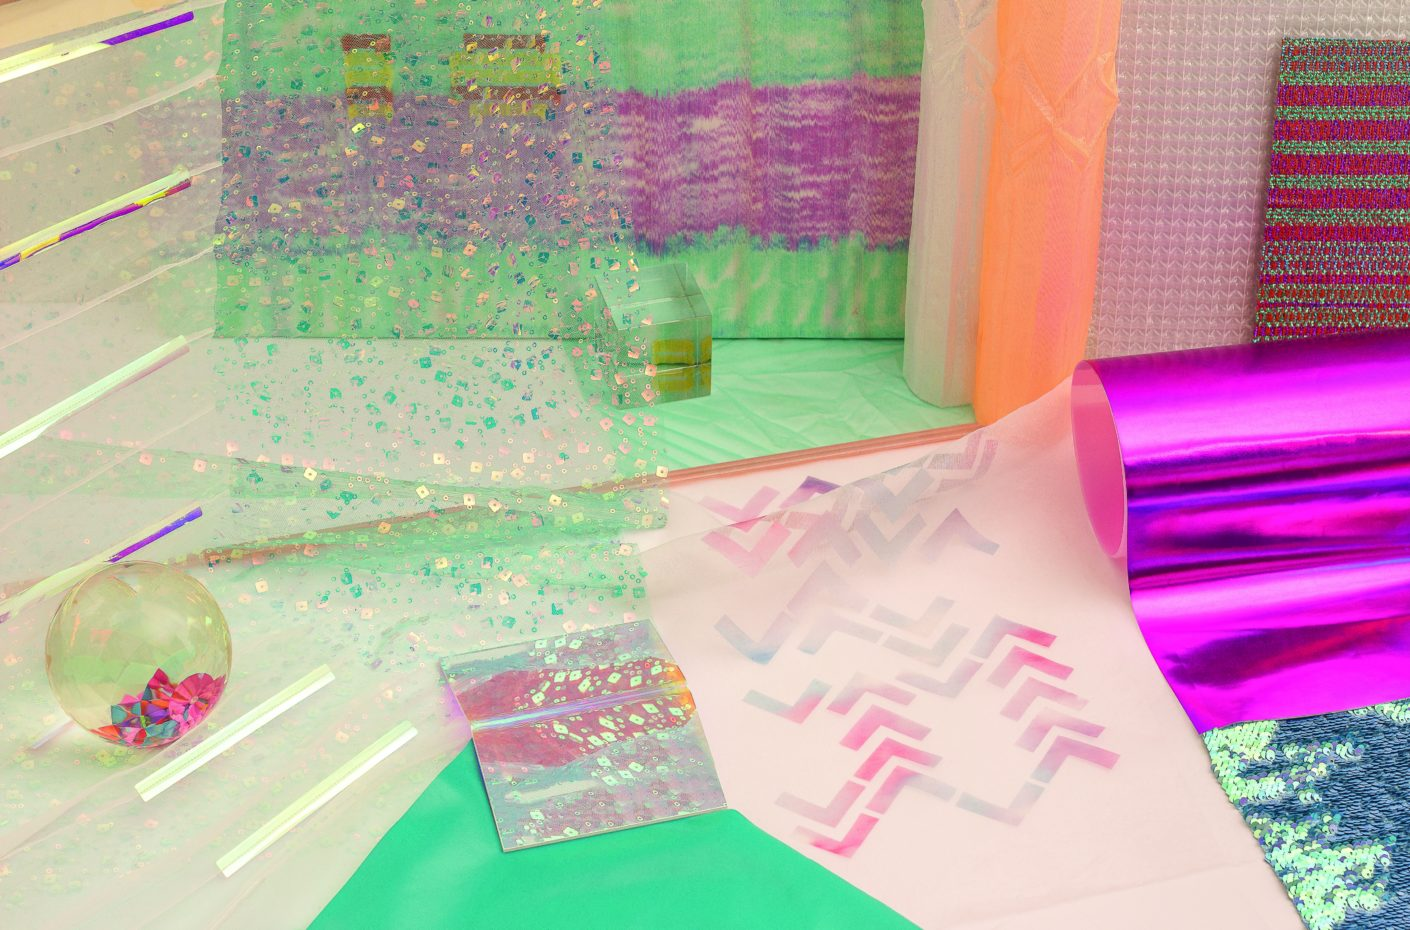 Shimmering range: Foils and fabrics by Dan Project and Felix Diener Studio.